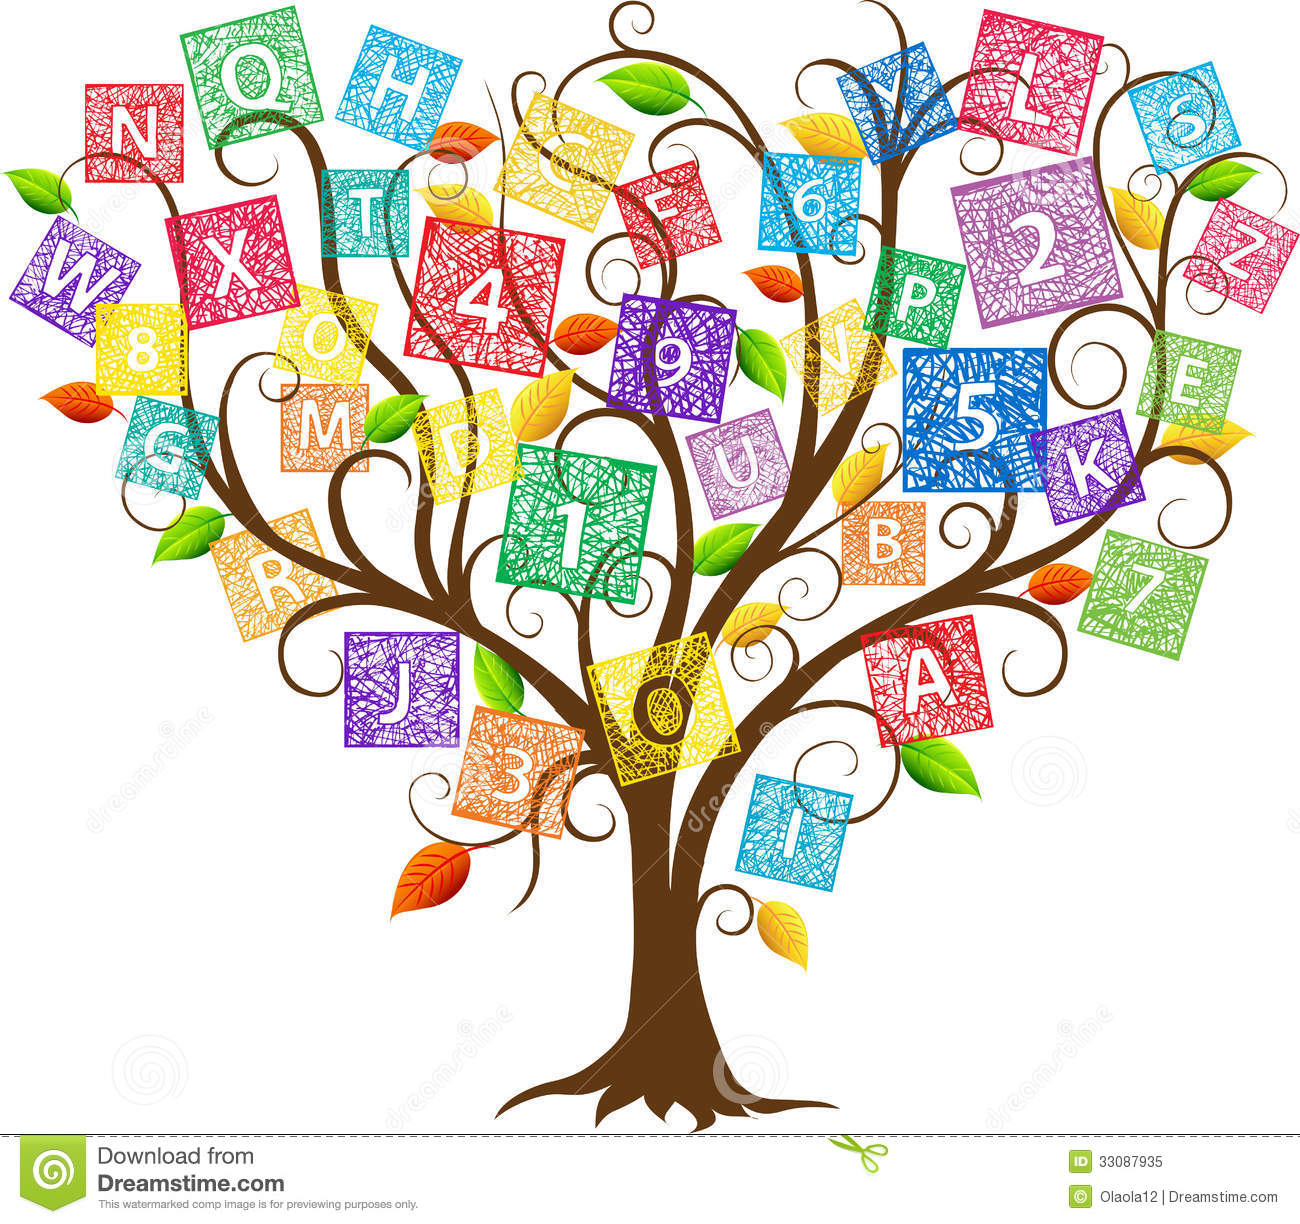 Clipartfest letter tree. Abc and number clipart